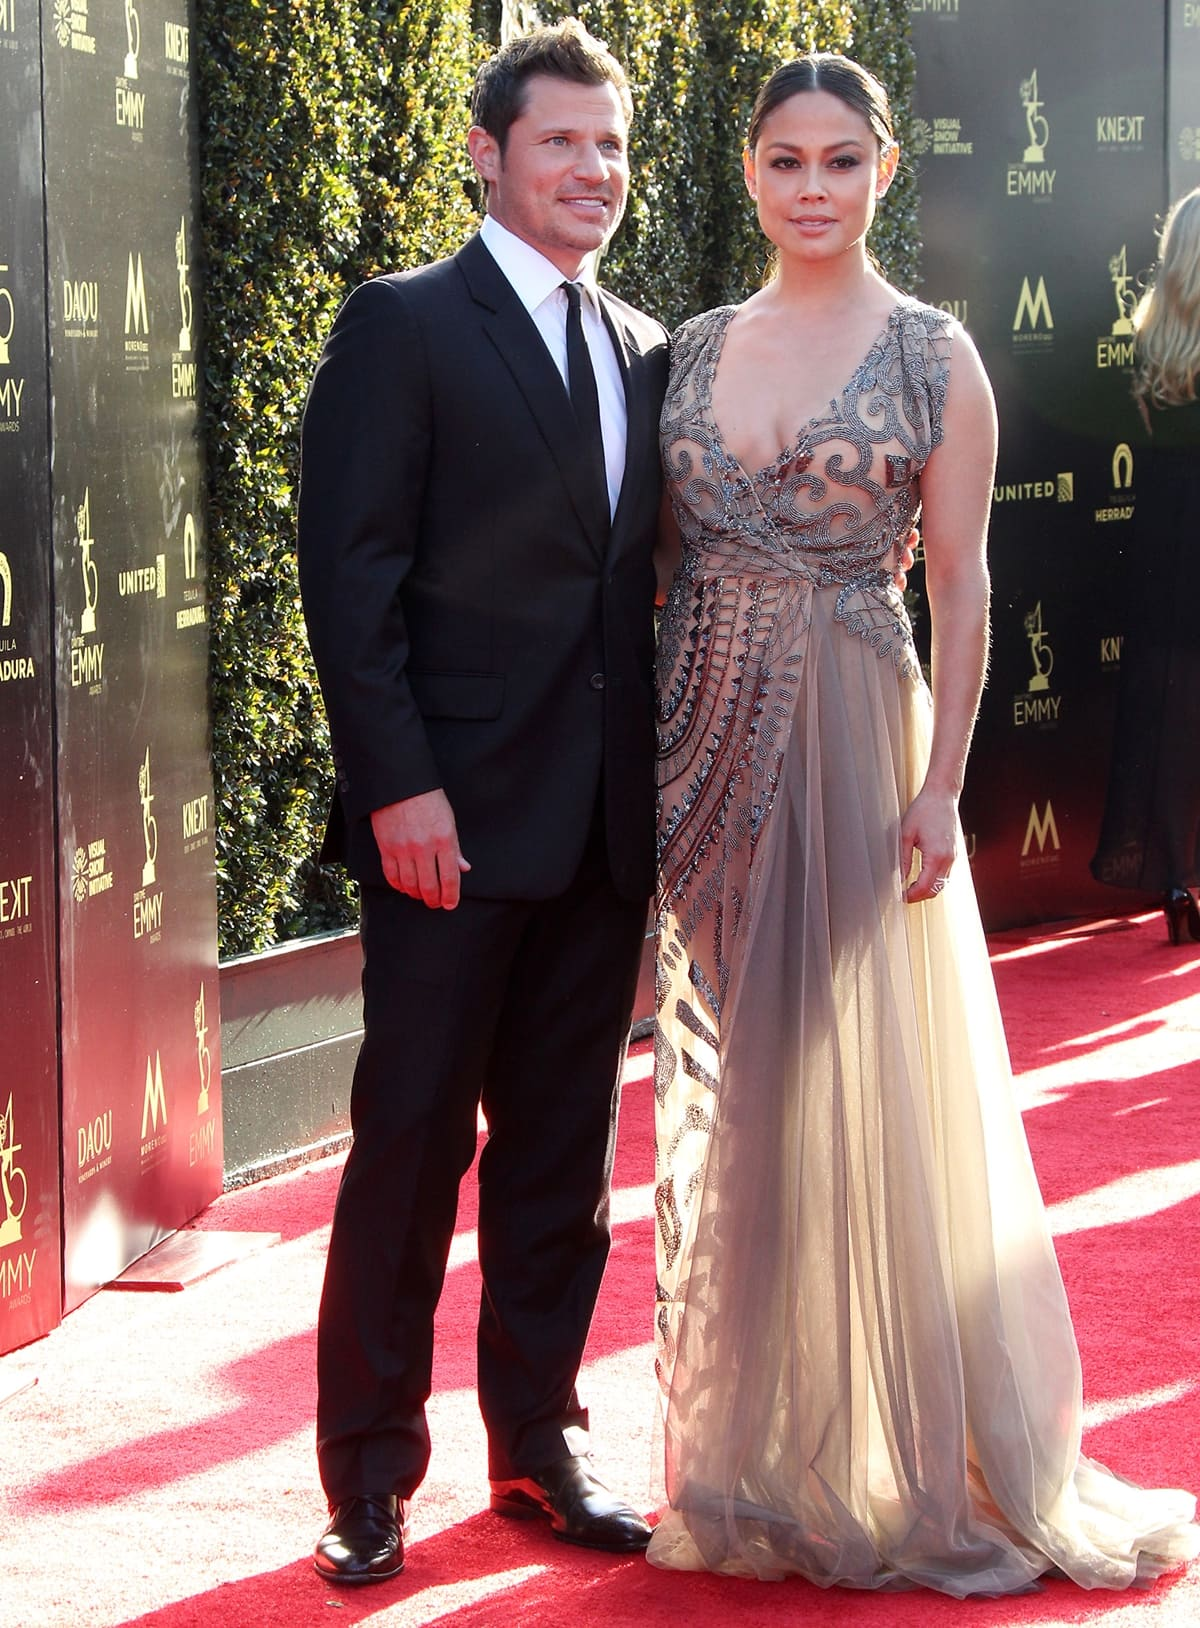 Nick and Vanessa Lachey on the red carpet at the 2018 Daytime Creative Arts Emmys